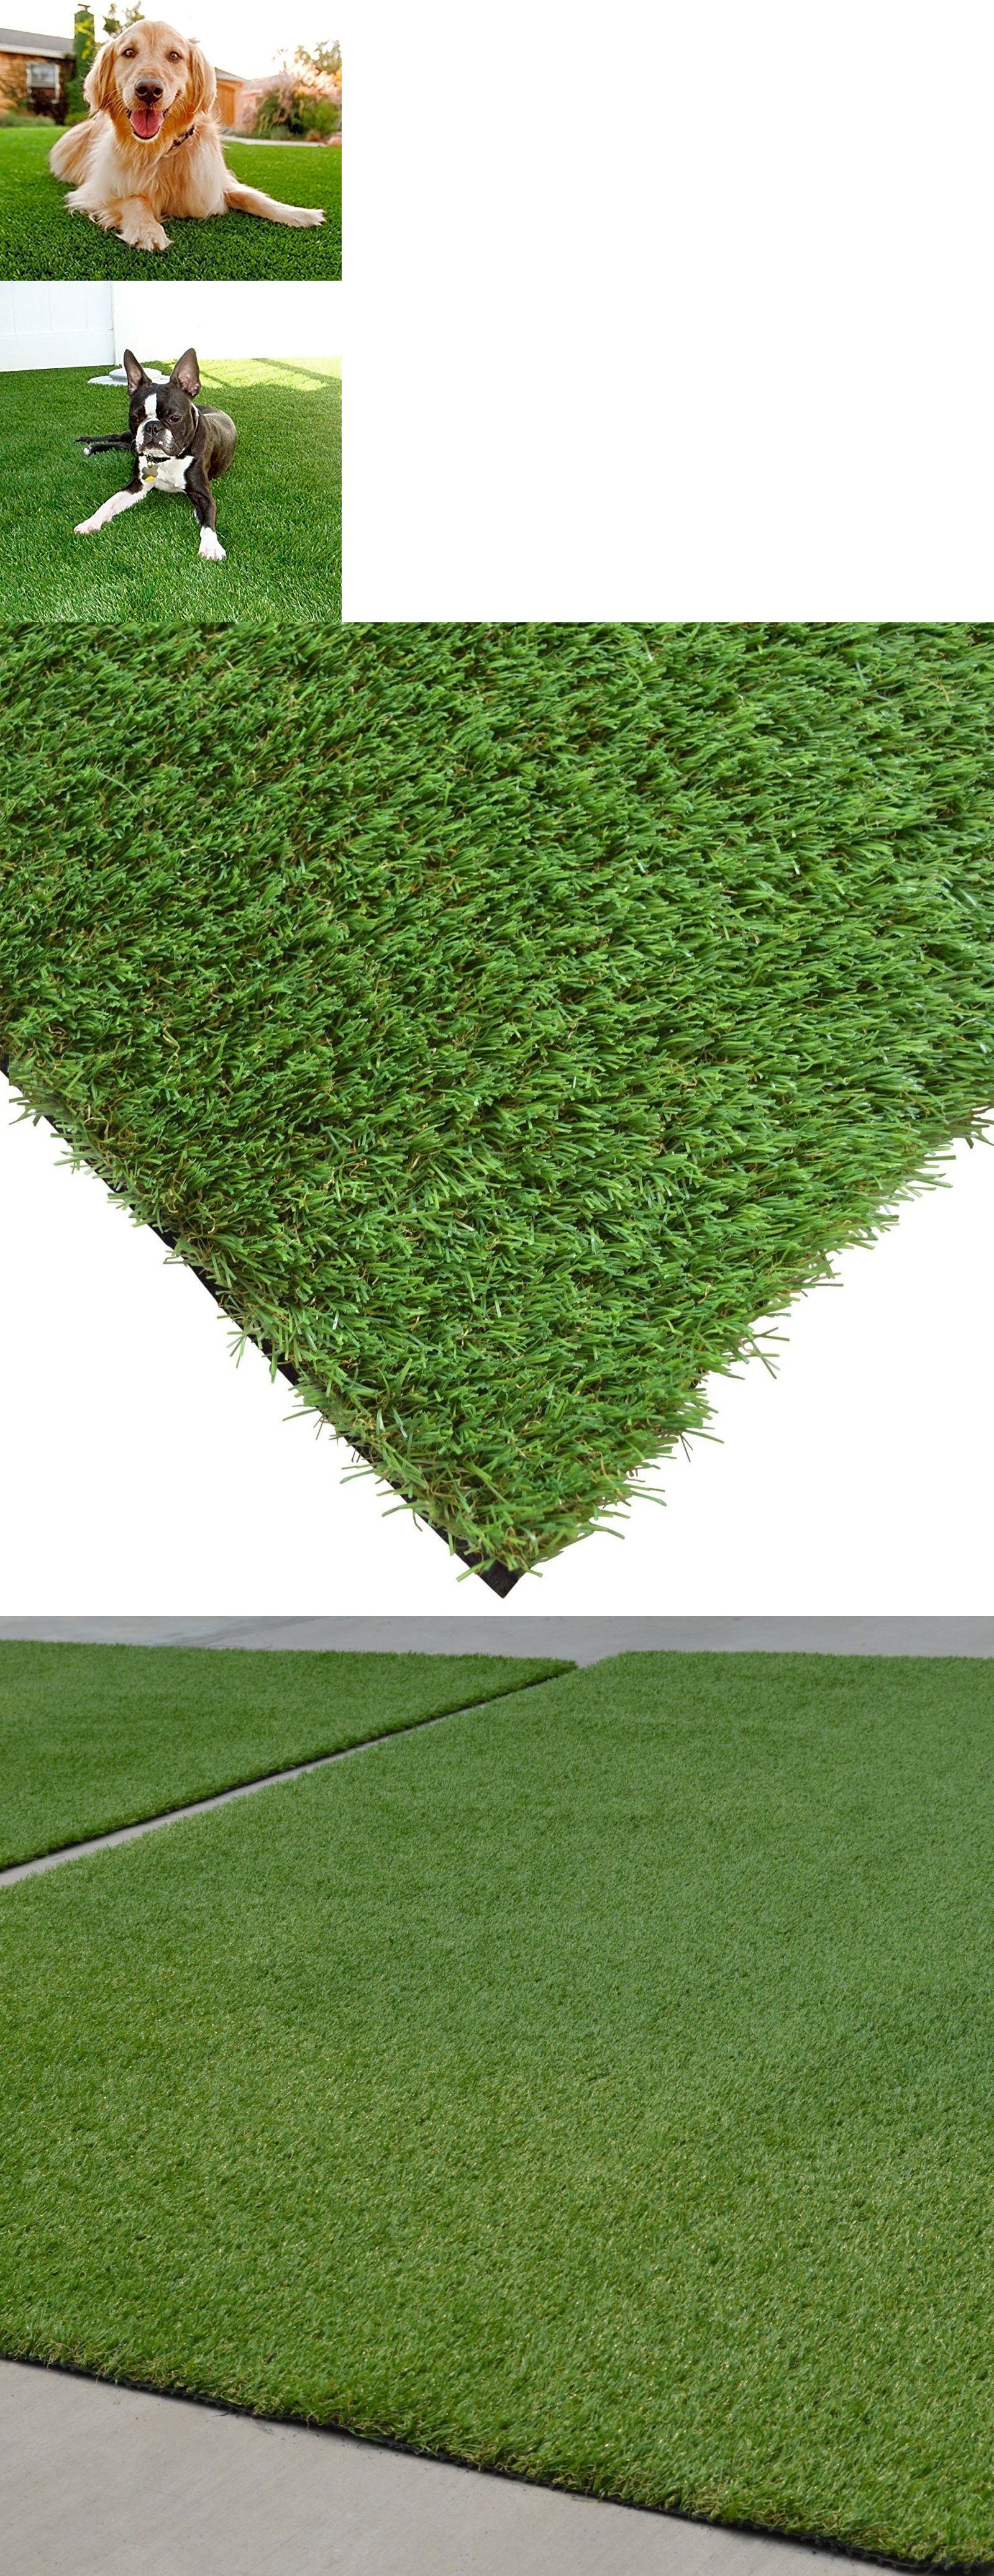 Buy Fake Grass Synthetic Grass 181031 Synthetic Turf Artificial Lawn Fake Grass